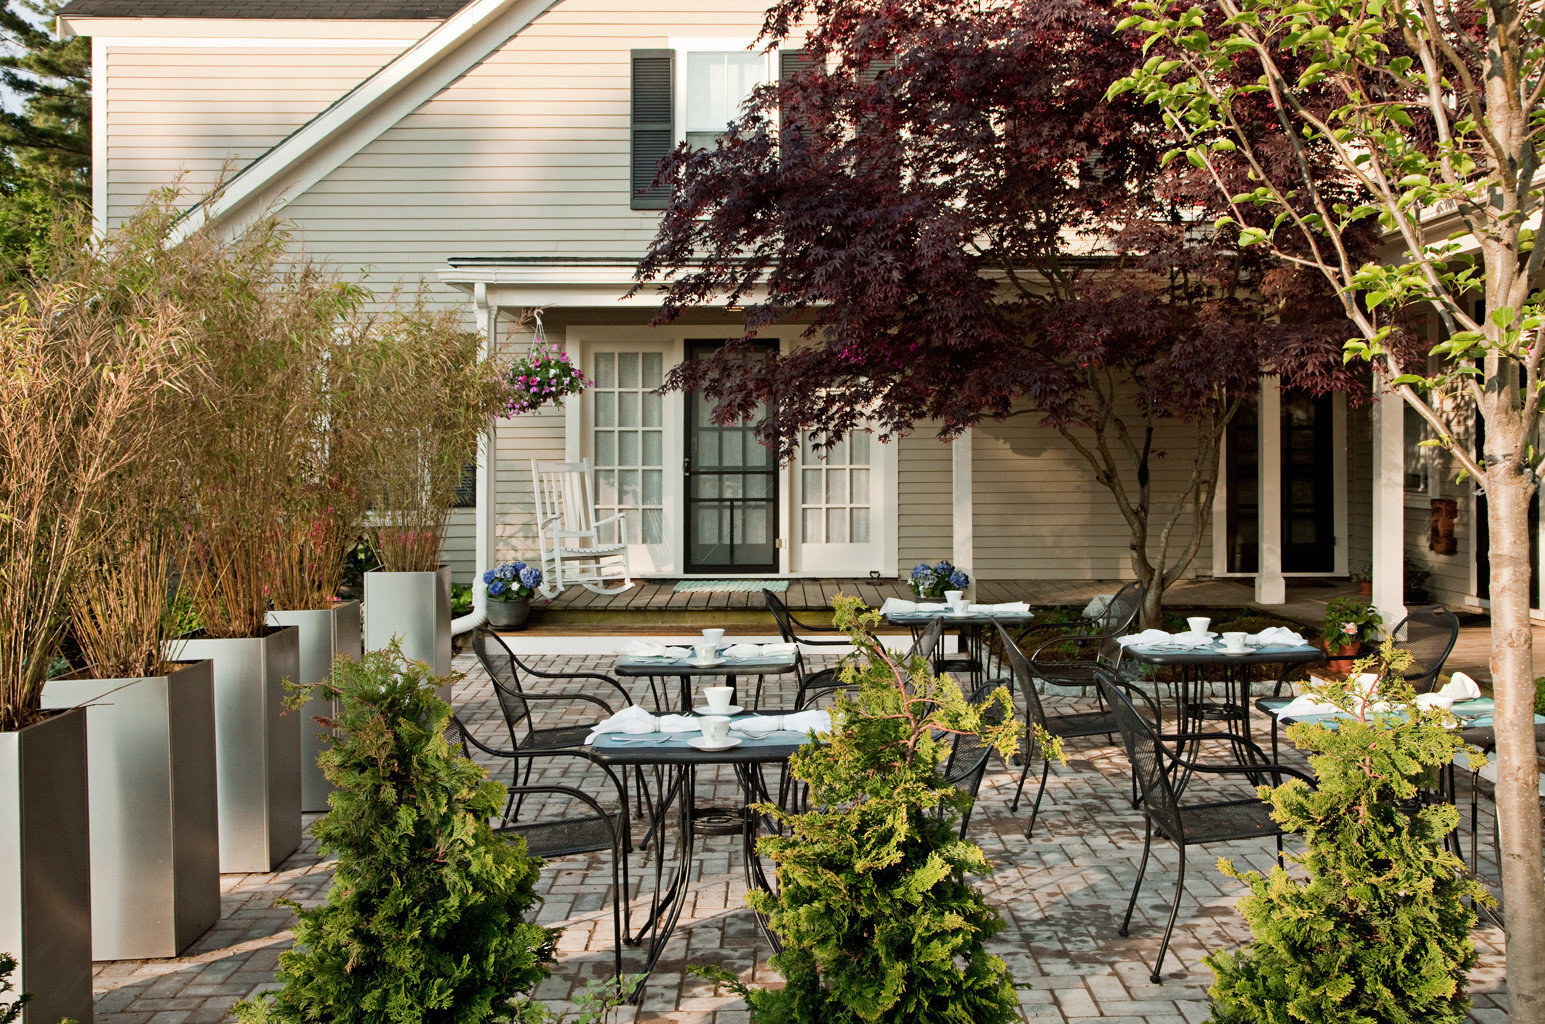 B&B Dining Elegant Grounds Historic Inn tree building house plant property home backyard yard Courtyard porch cottage Garden outdoor structure orangery residential area flower farmhouse lawn landscape architect Patio landscaping Villa bushes stone